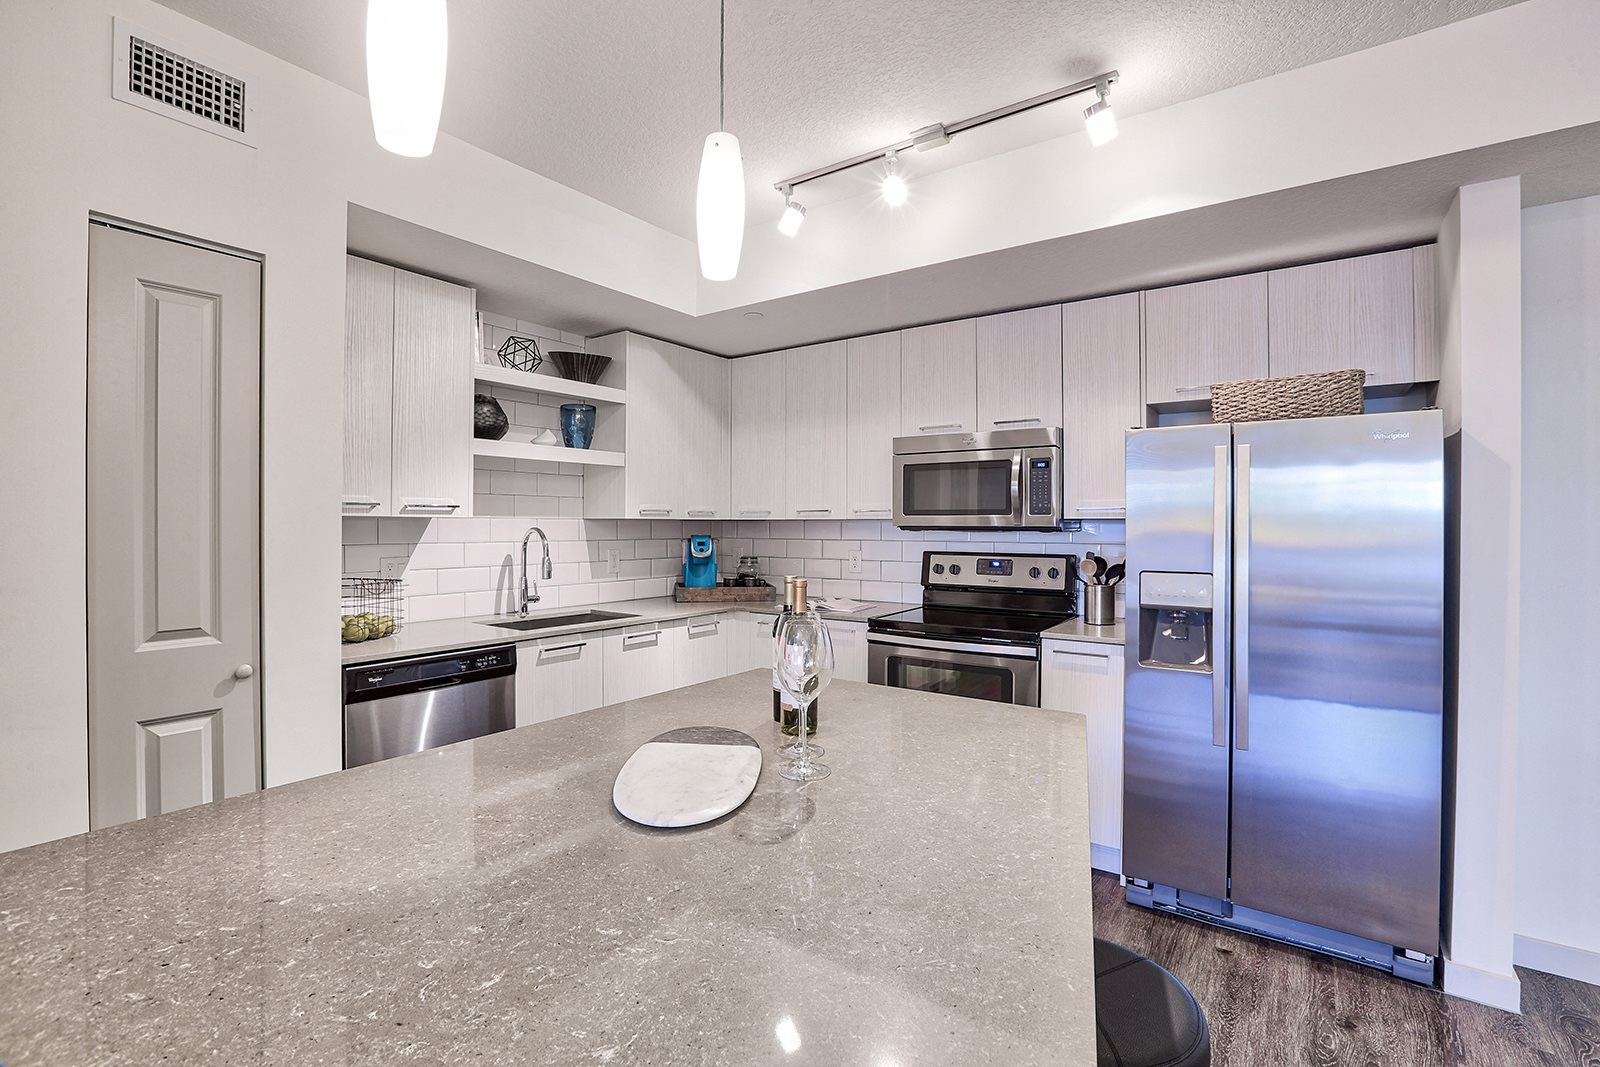 Gourmet Kitchens feature Stainless Steel Appliances at Windsor at Delray Beach, Florida